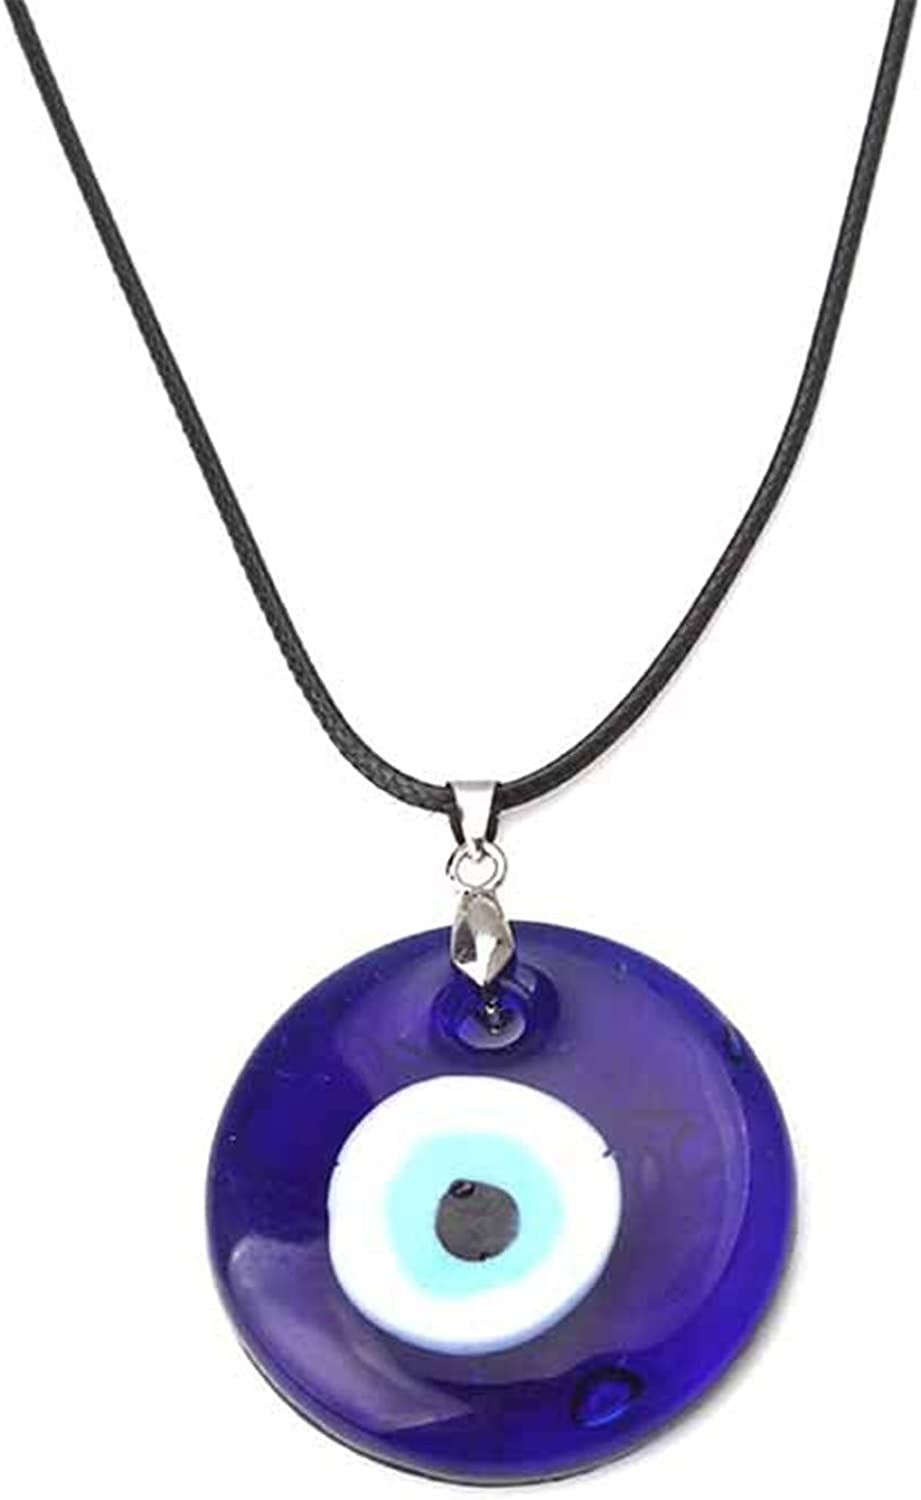 COLORFUL BLING Set Boho Evil Eye Round Teardrop Wax Rope Cotton Necklace Choker Collar Chain Party Jewelry for Women Girls Gifts Dainty Tiny Cute Adjustable Turkish Protect Lucky